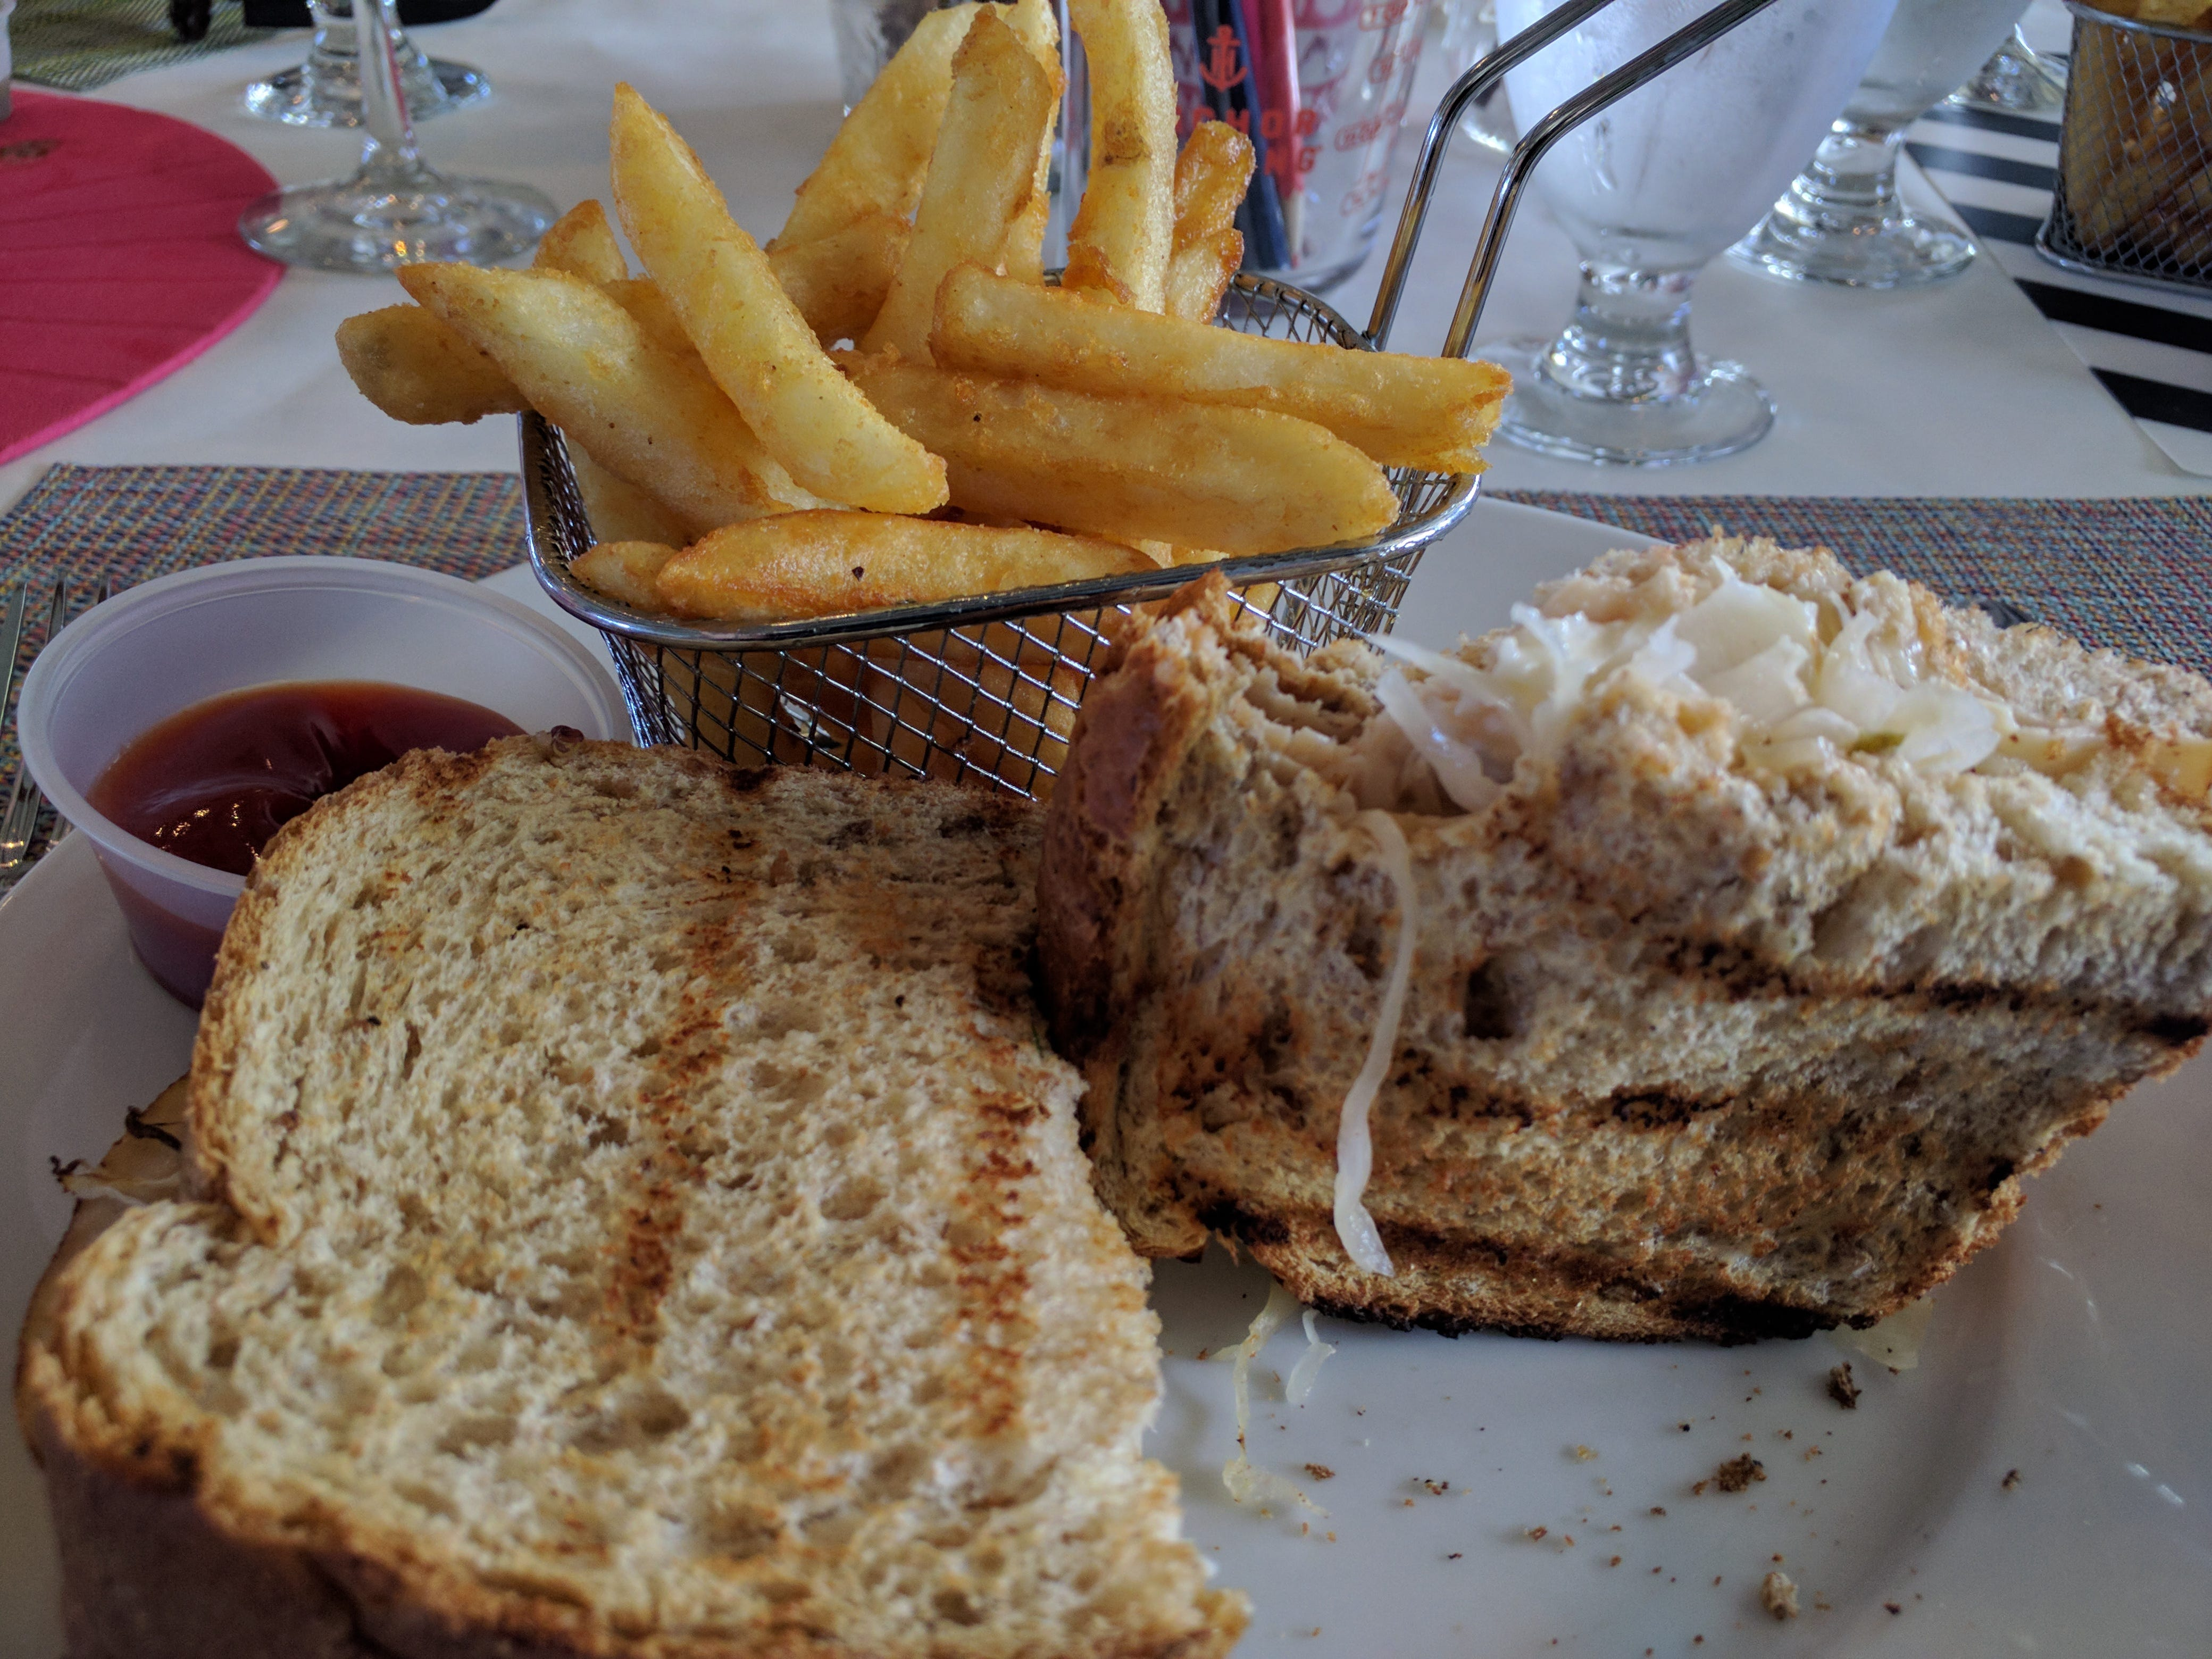 The turkey Reuben is lightly grilled to a healthy, melty finish at Counter Culture in Vero Beach.